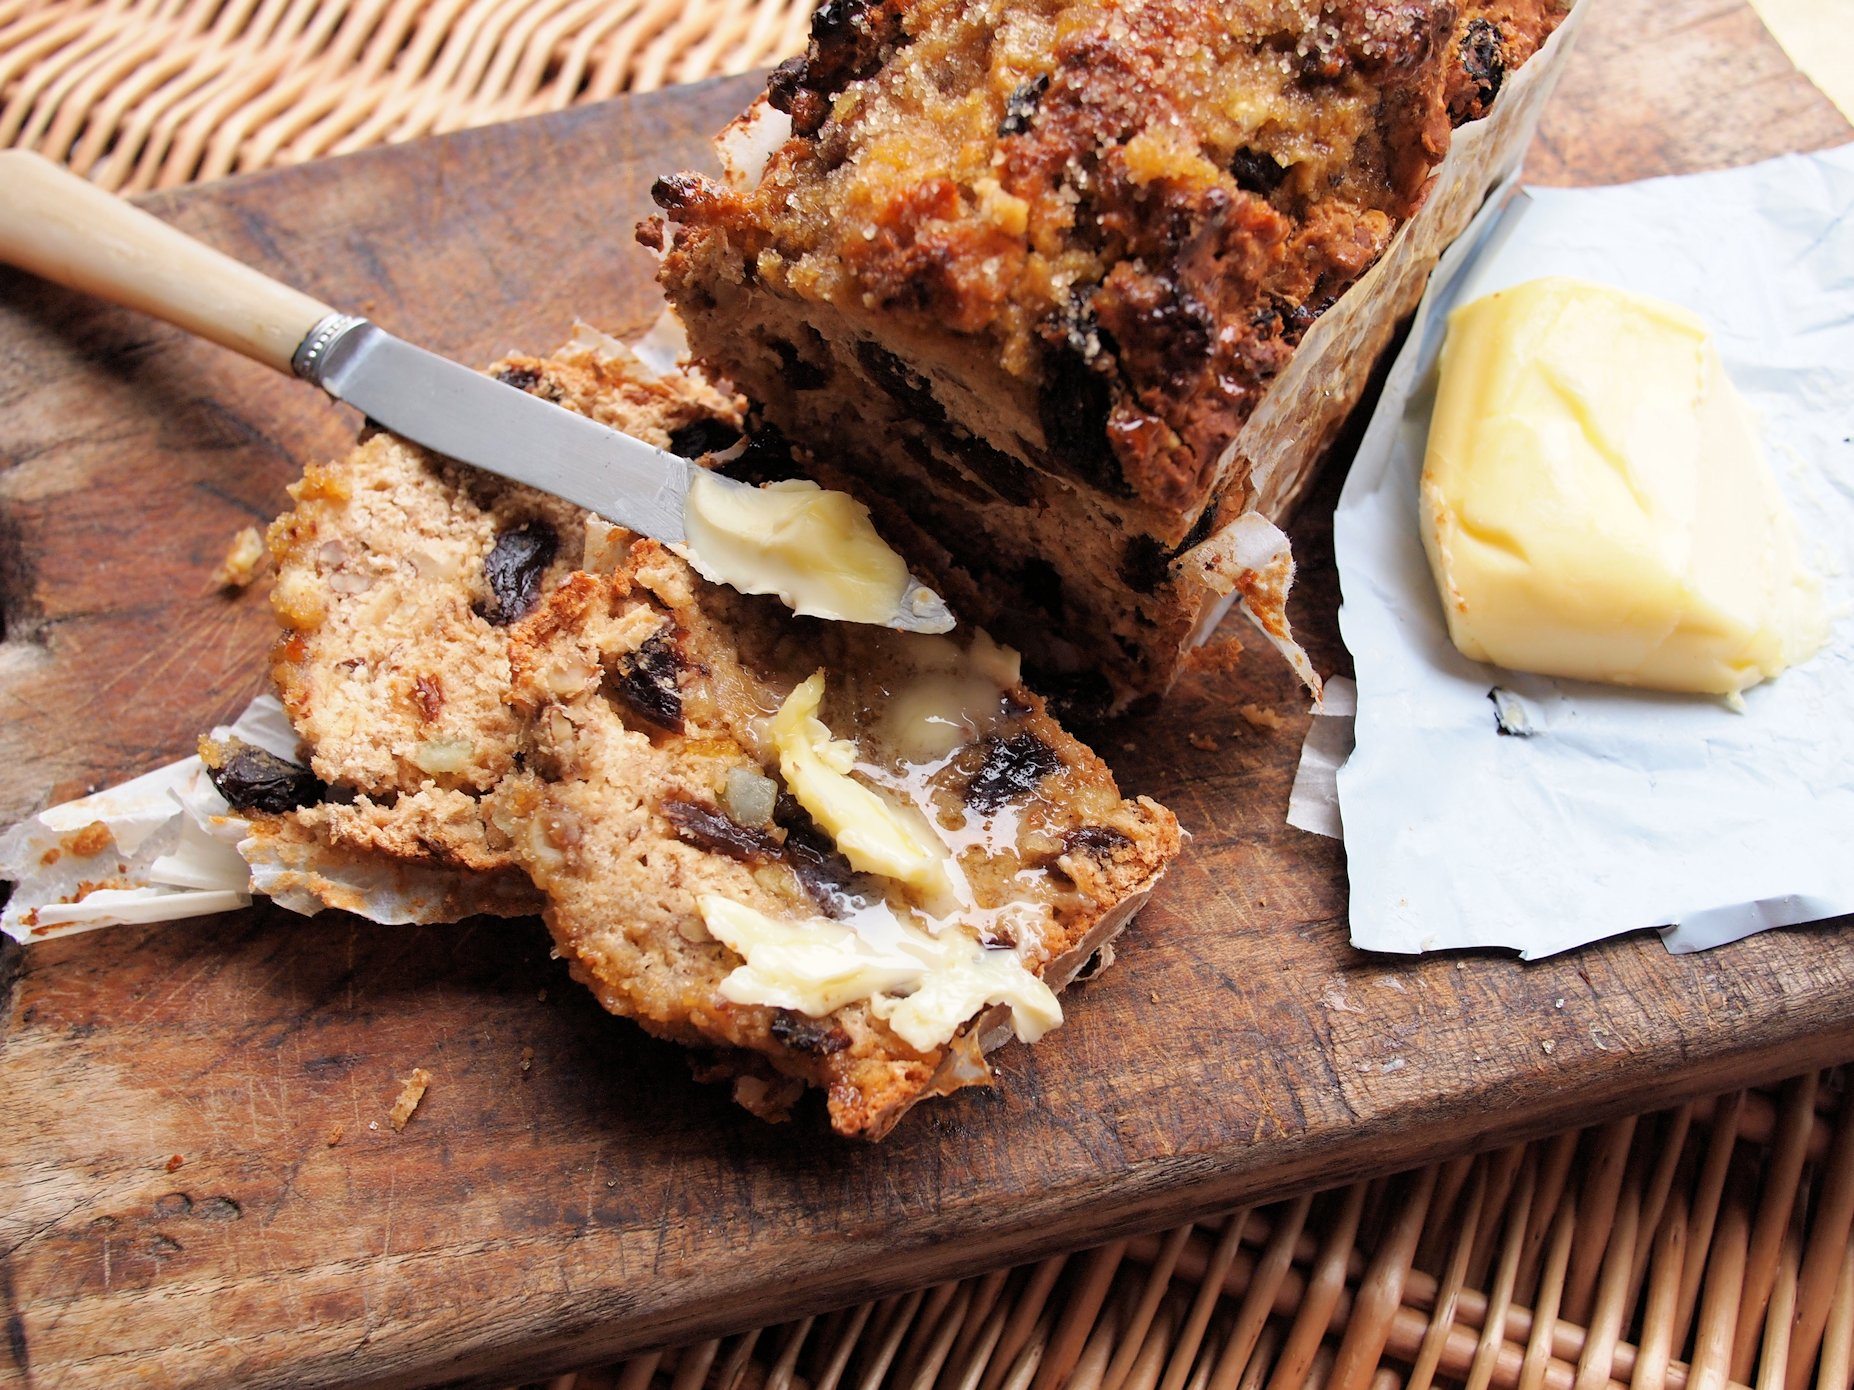 ... Log Fires and Old-Fashioned Granny Loaf (Egg-Free and Fat-Free) Recipe